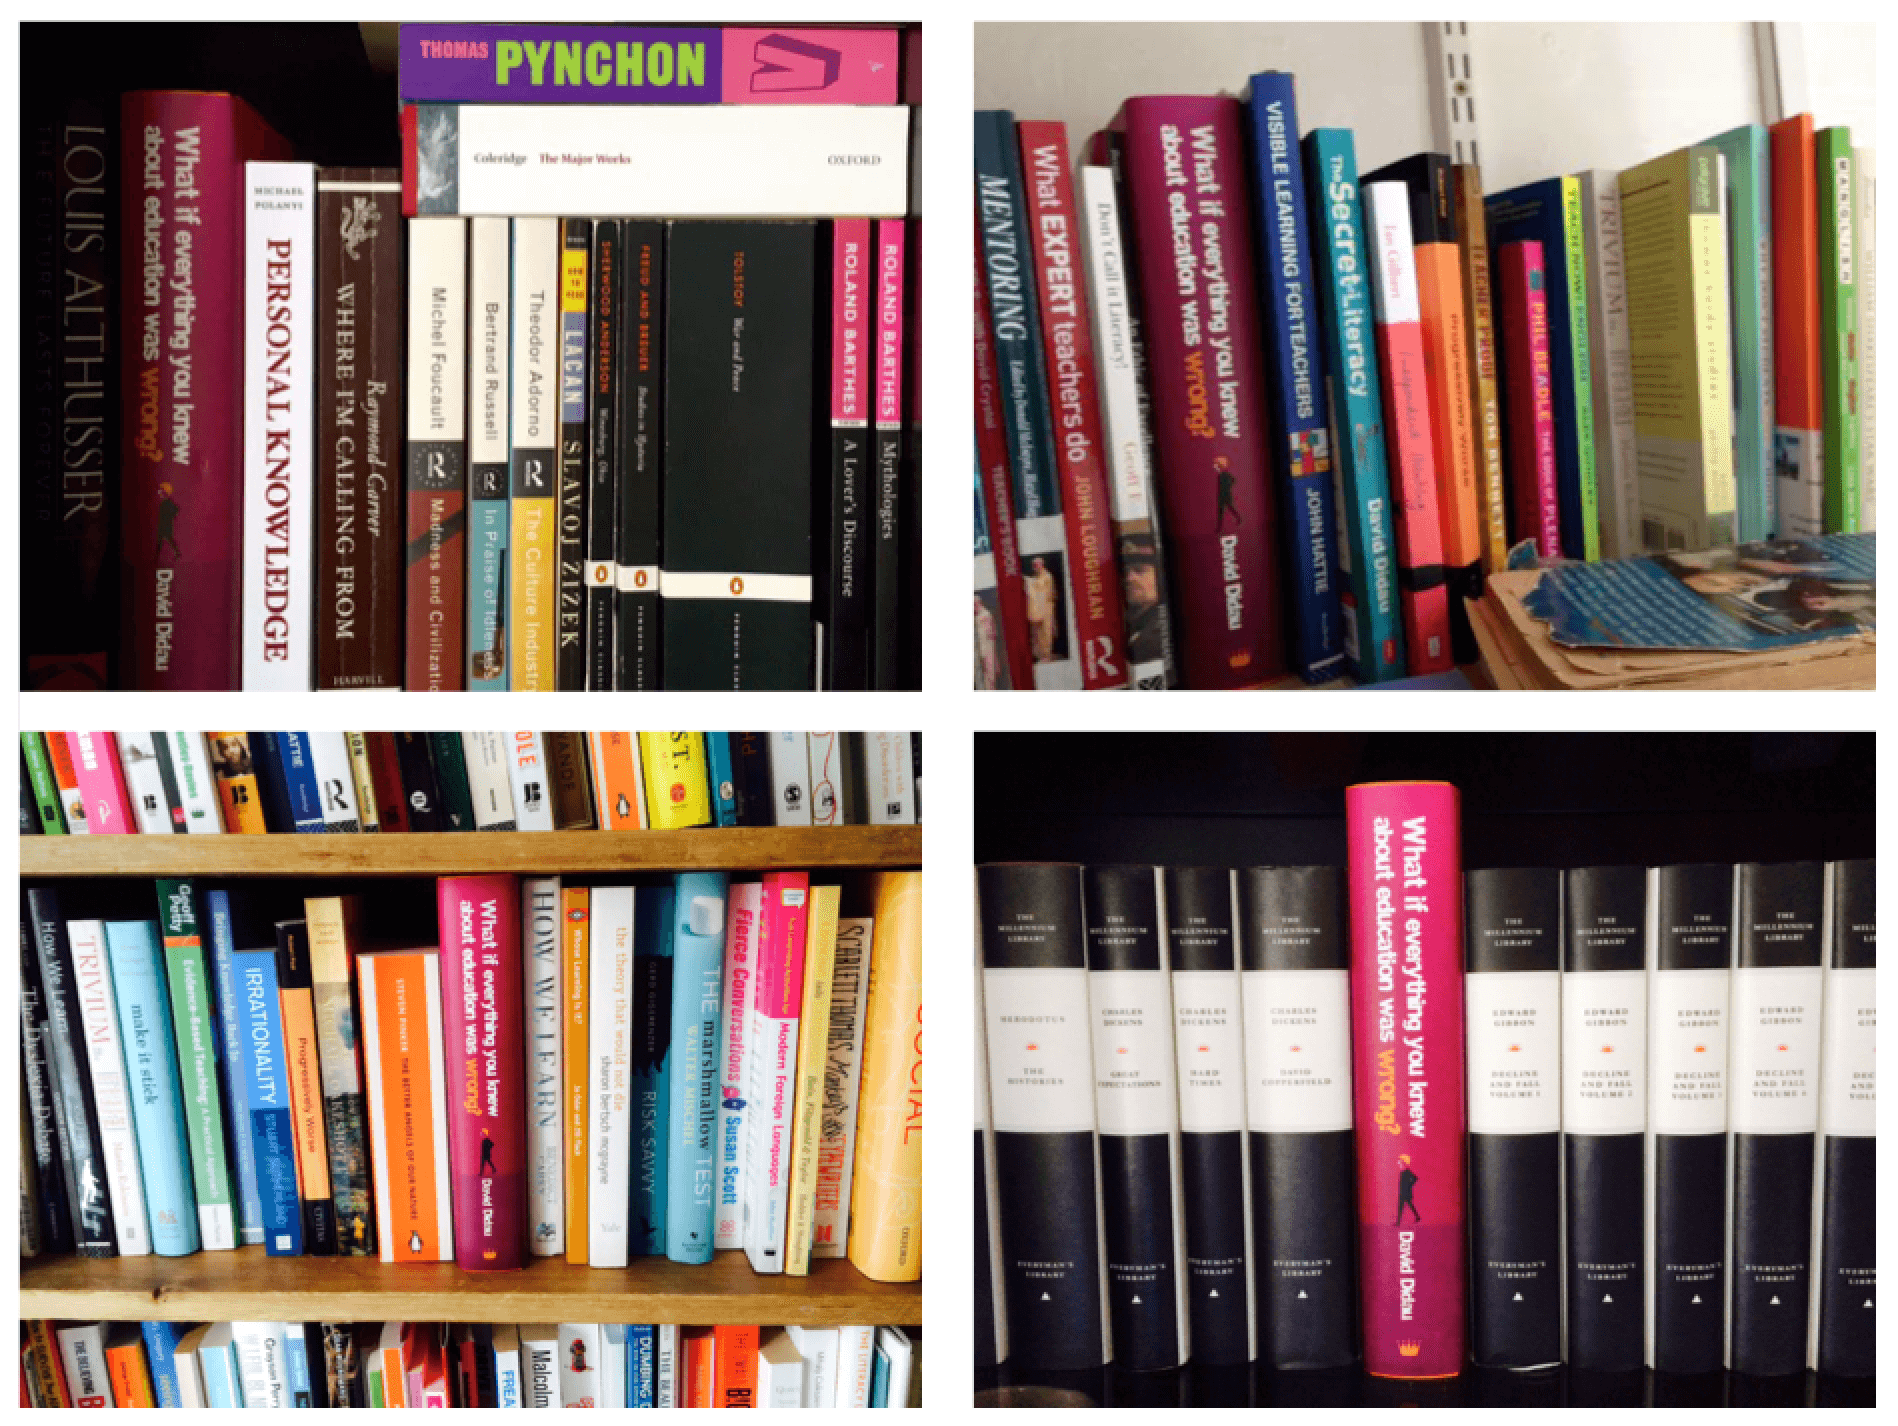 WrongBook shelfies